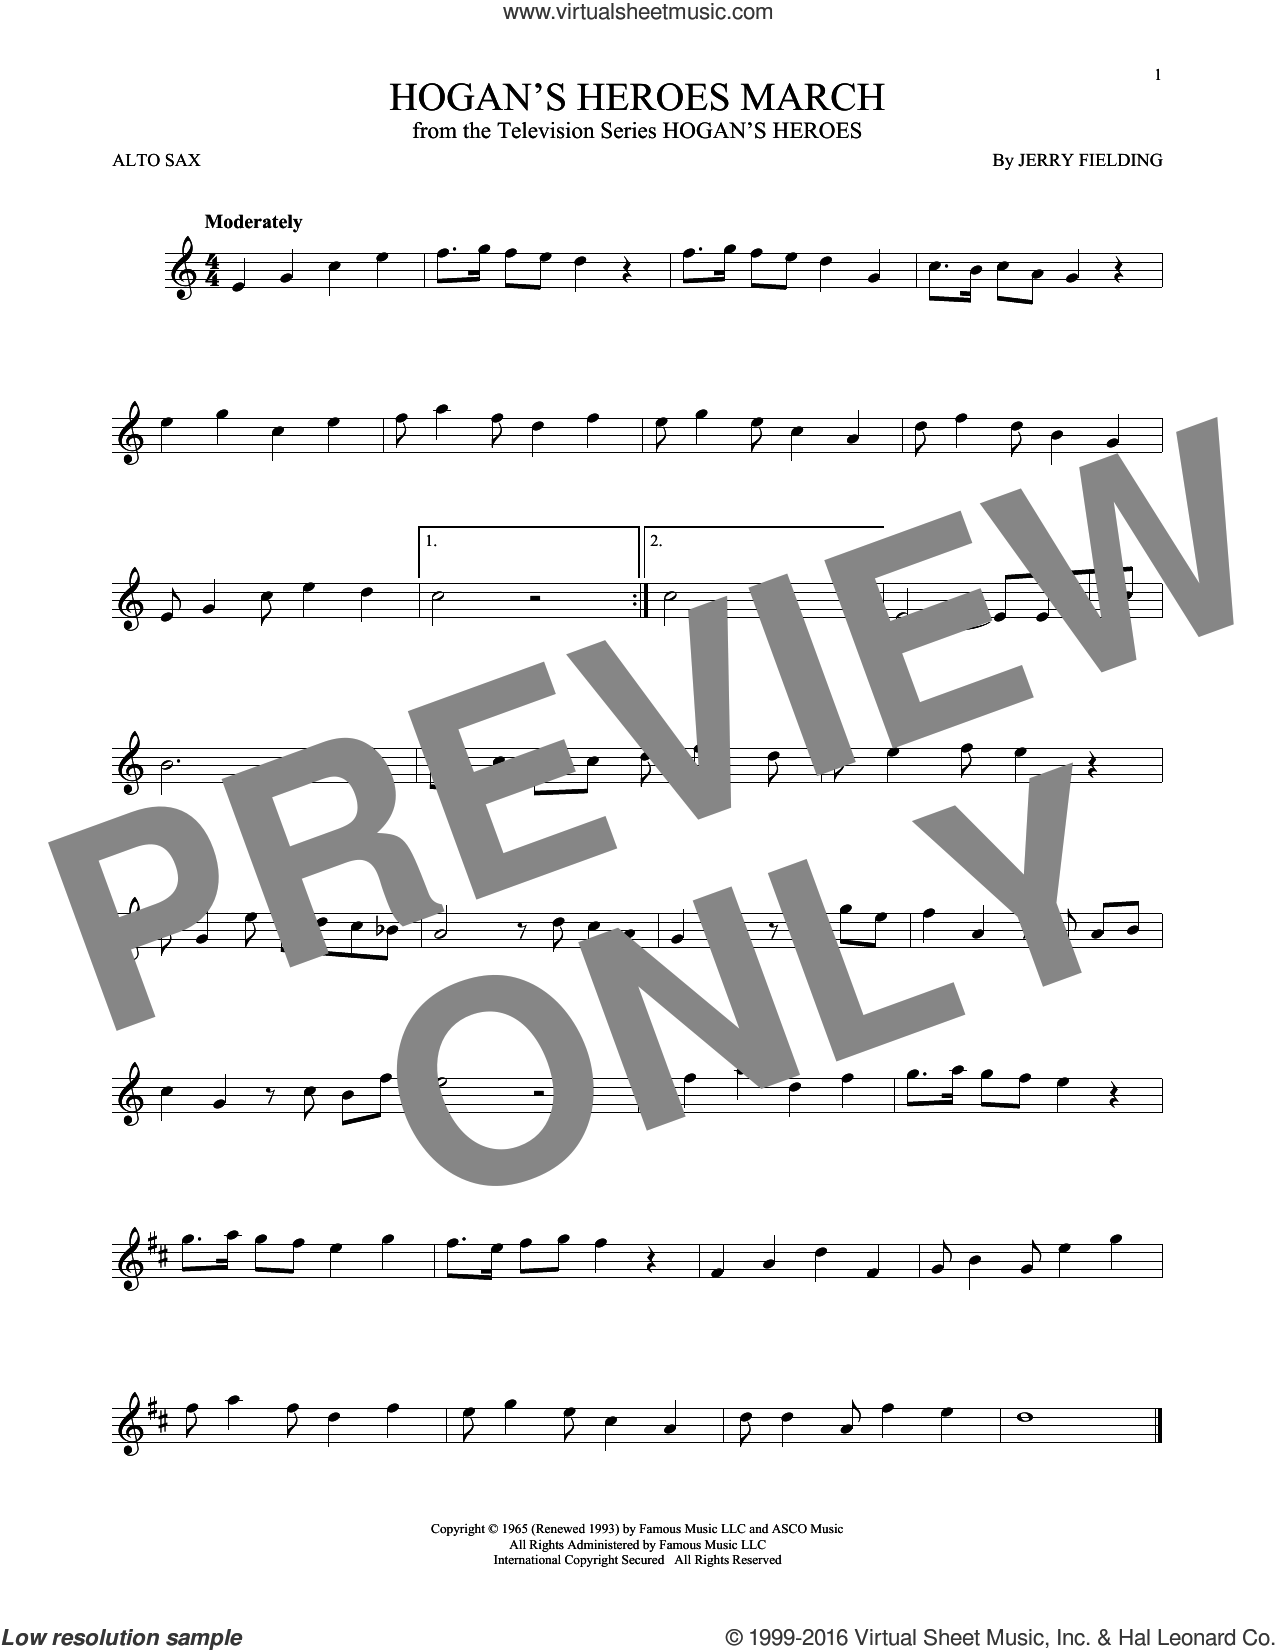 Hogan's Heroes March sheet music for alto saxophone solo by Jerry Fielding, intermediate